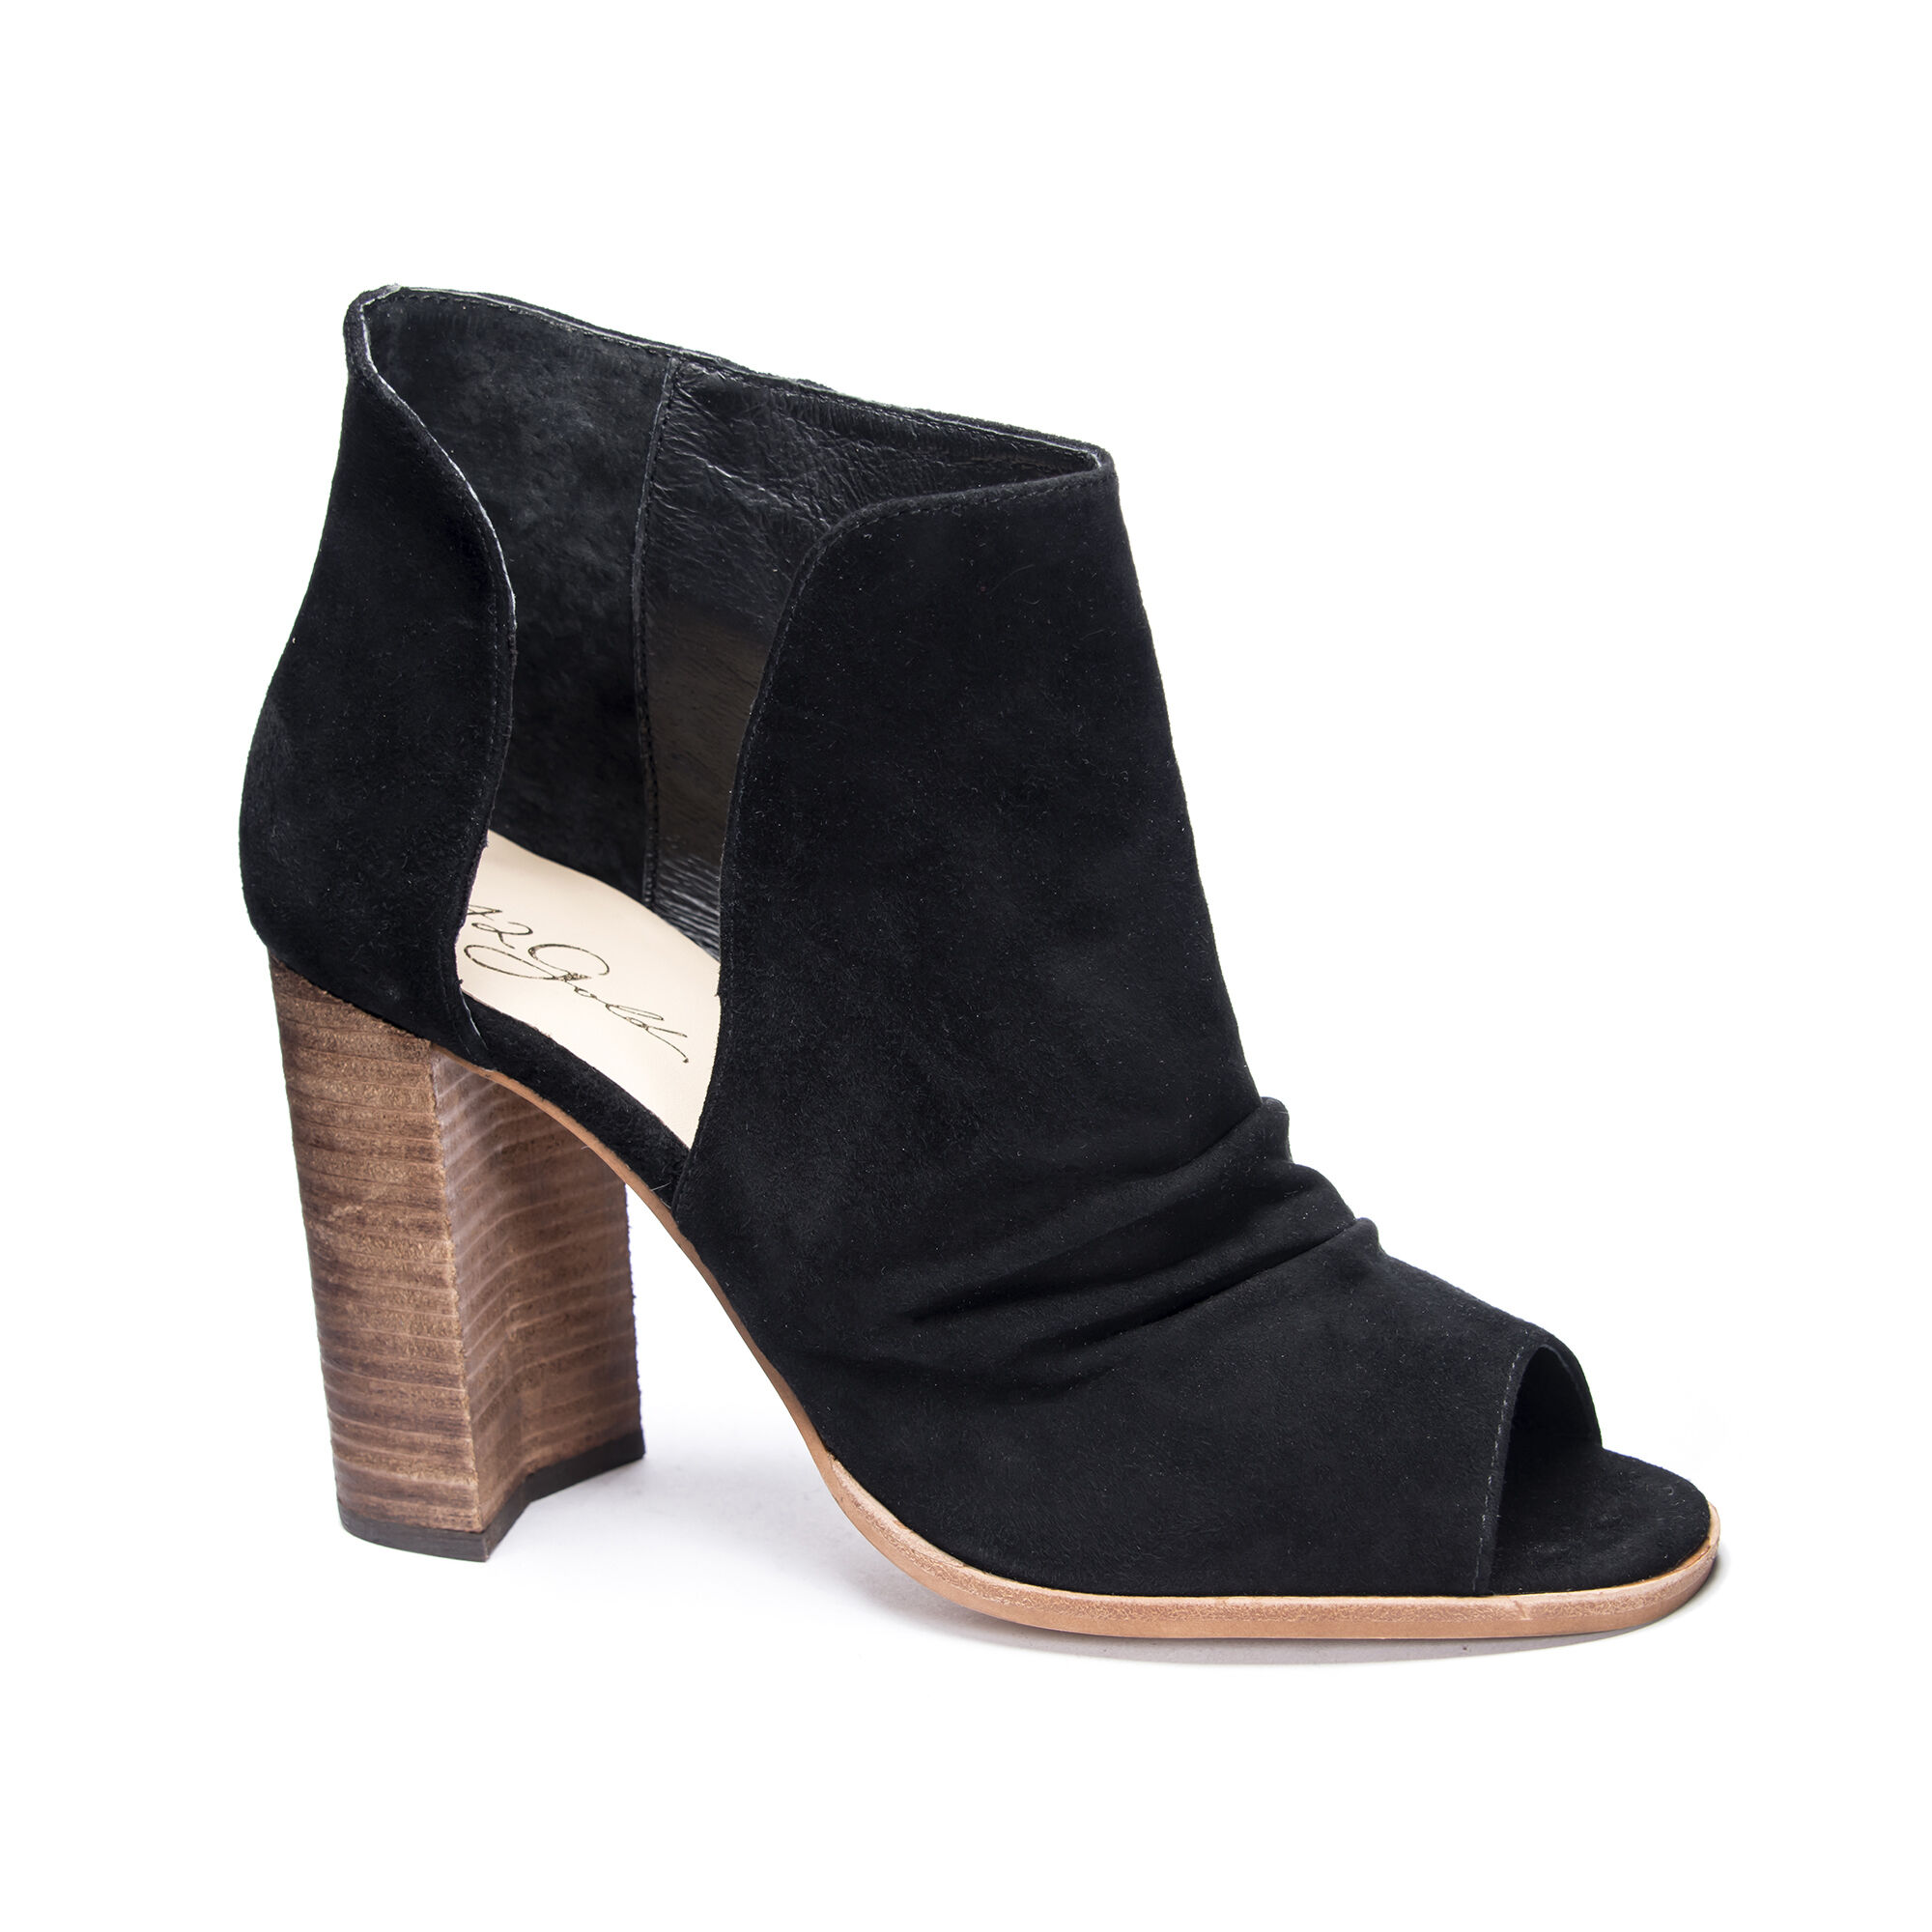 Womens Boots \u0026 booties | Chinese Laundry